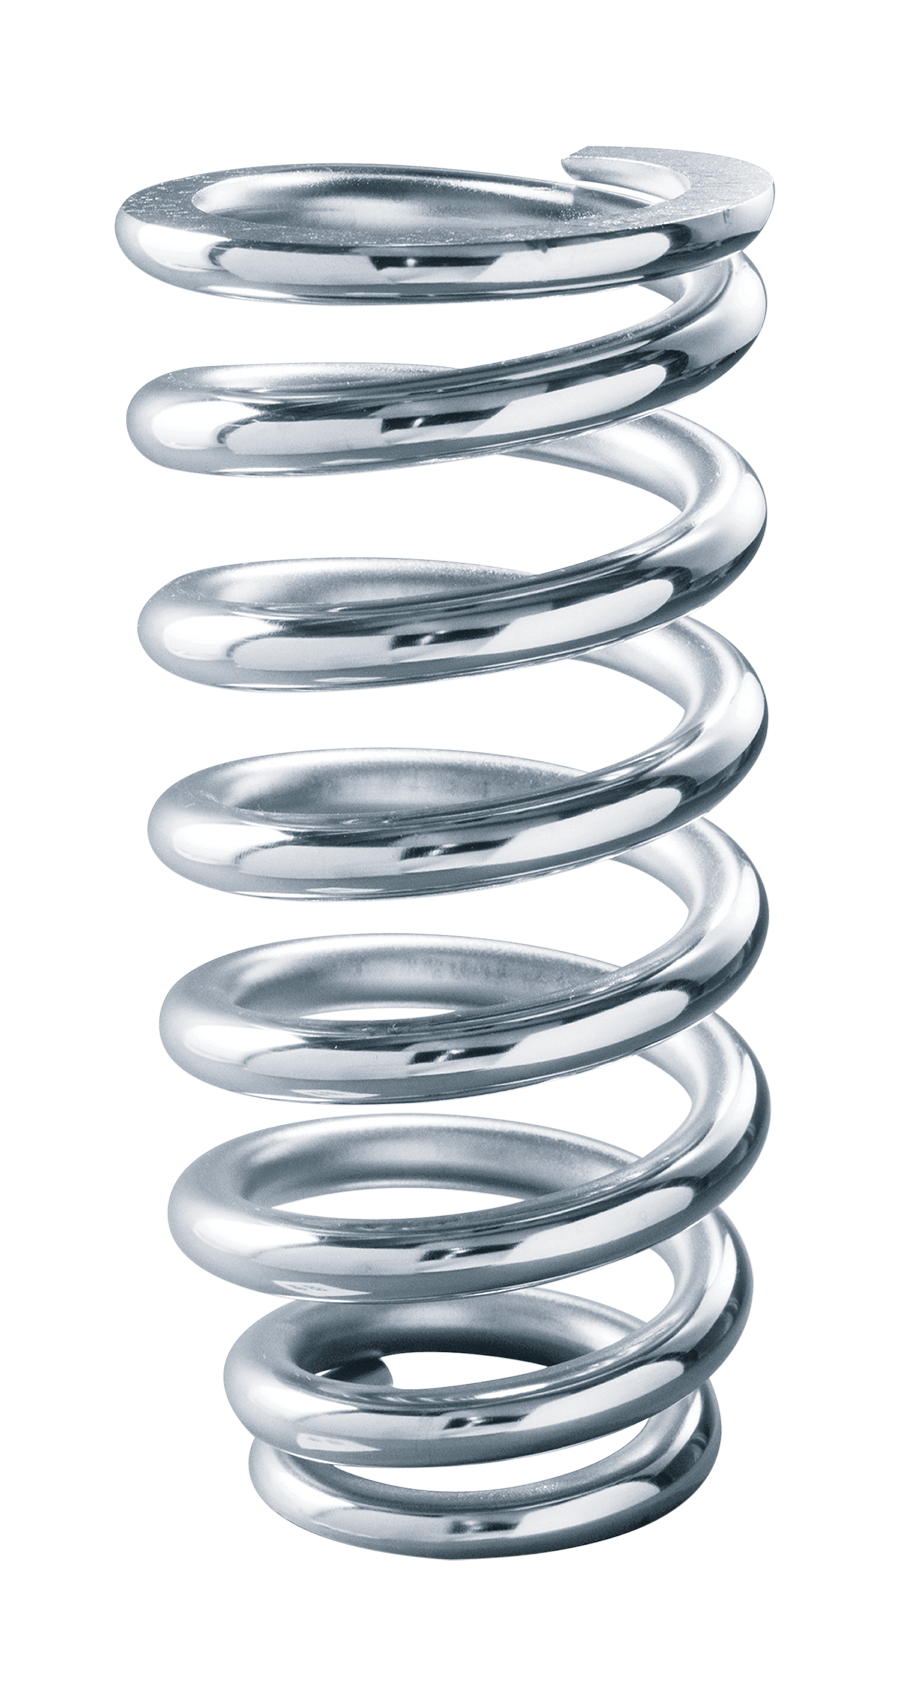 900x1706 Springs For Mustang Ii Pro Coil System Mustang Springs Qa1